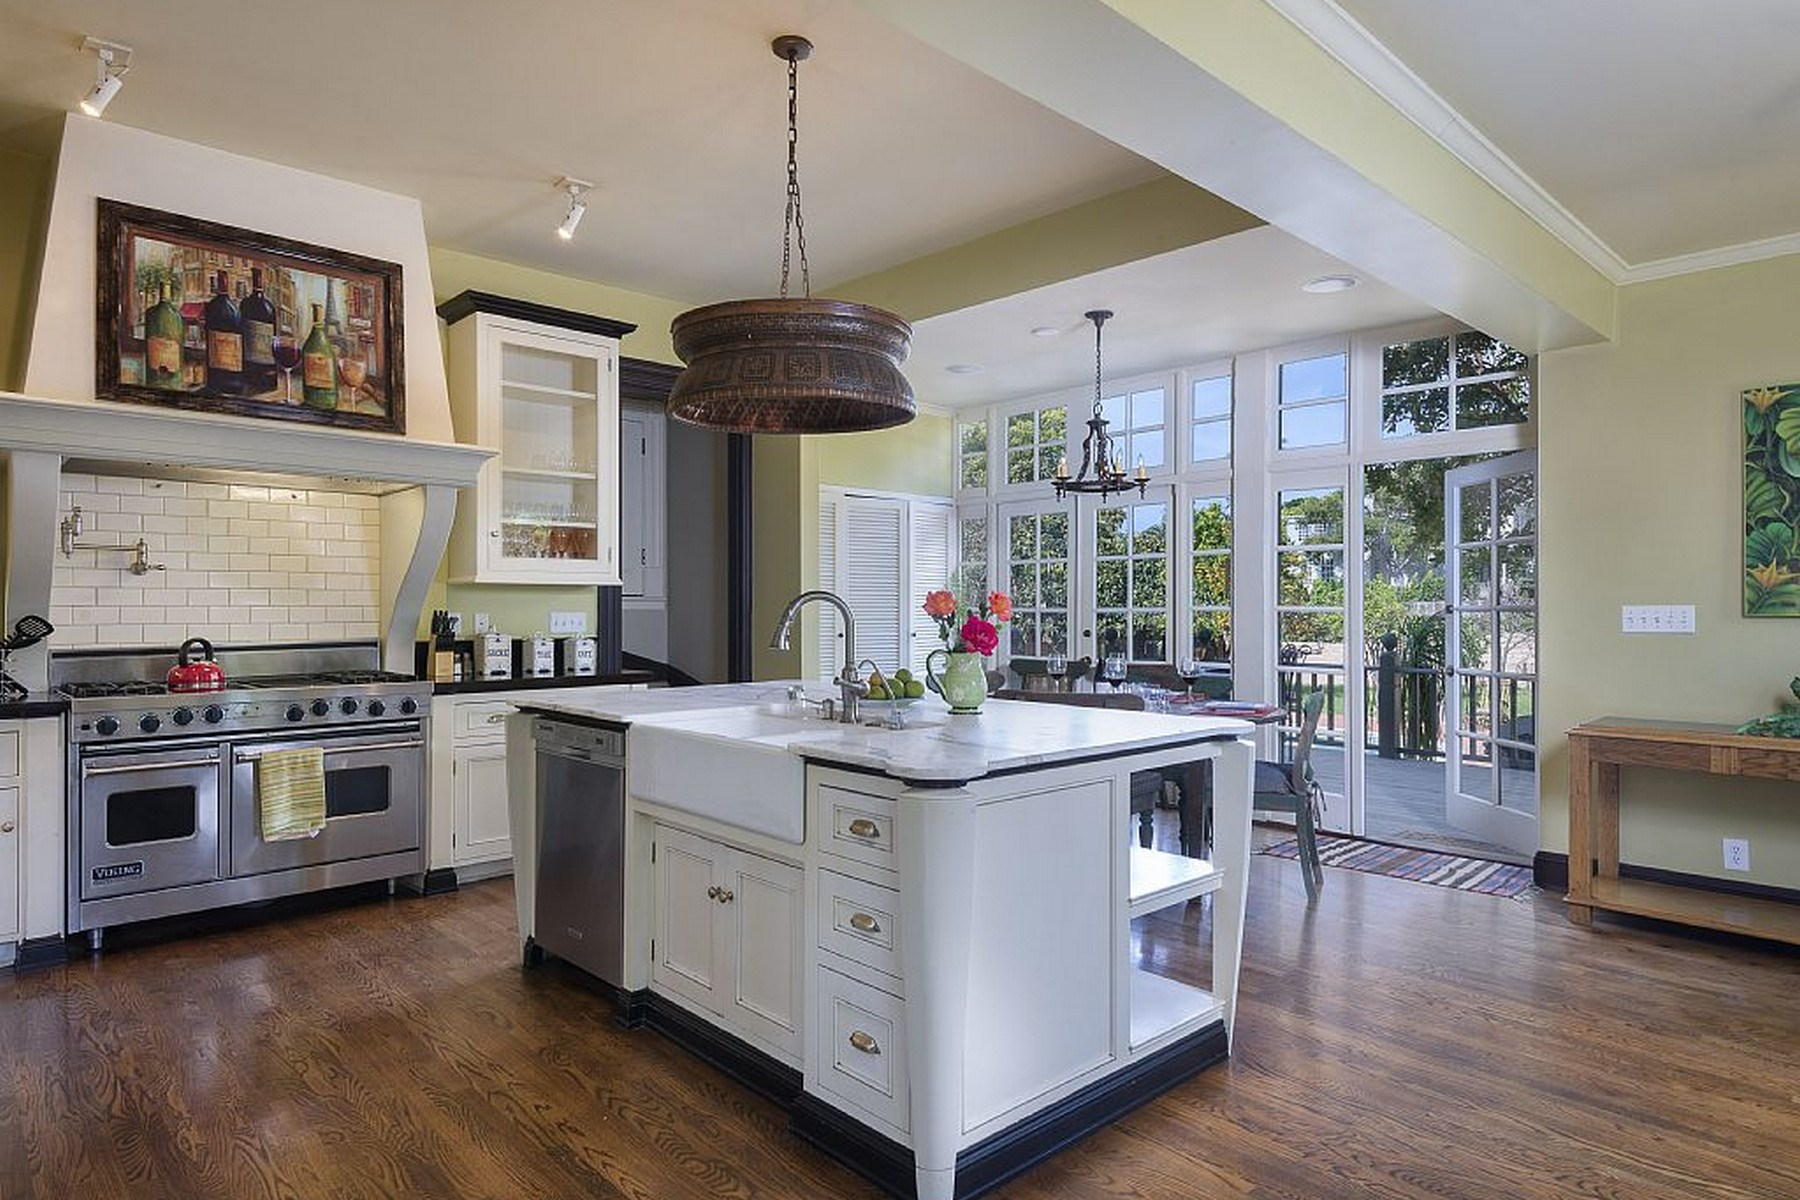 Single Family Home for Sale at Upper East Gated Estate 115 East Islay Street Santa Barbara, California, 93101 United States